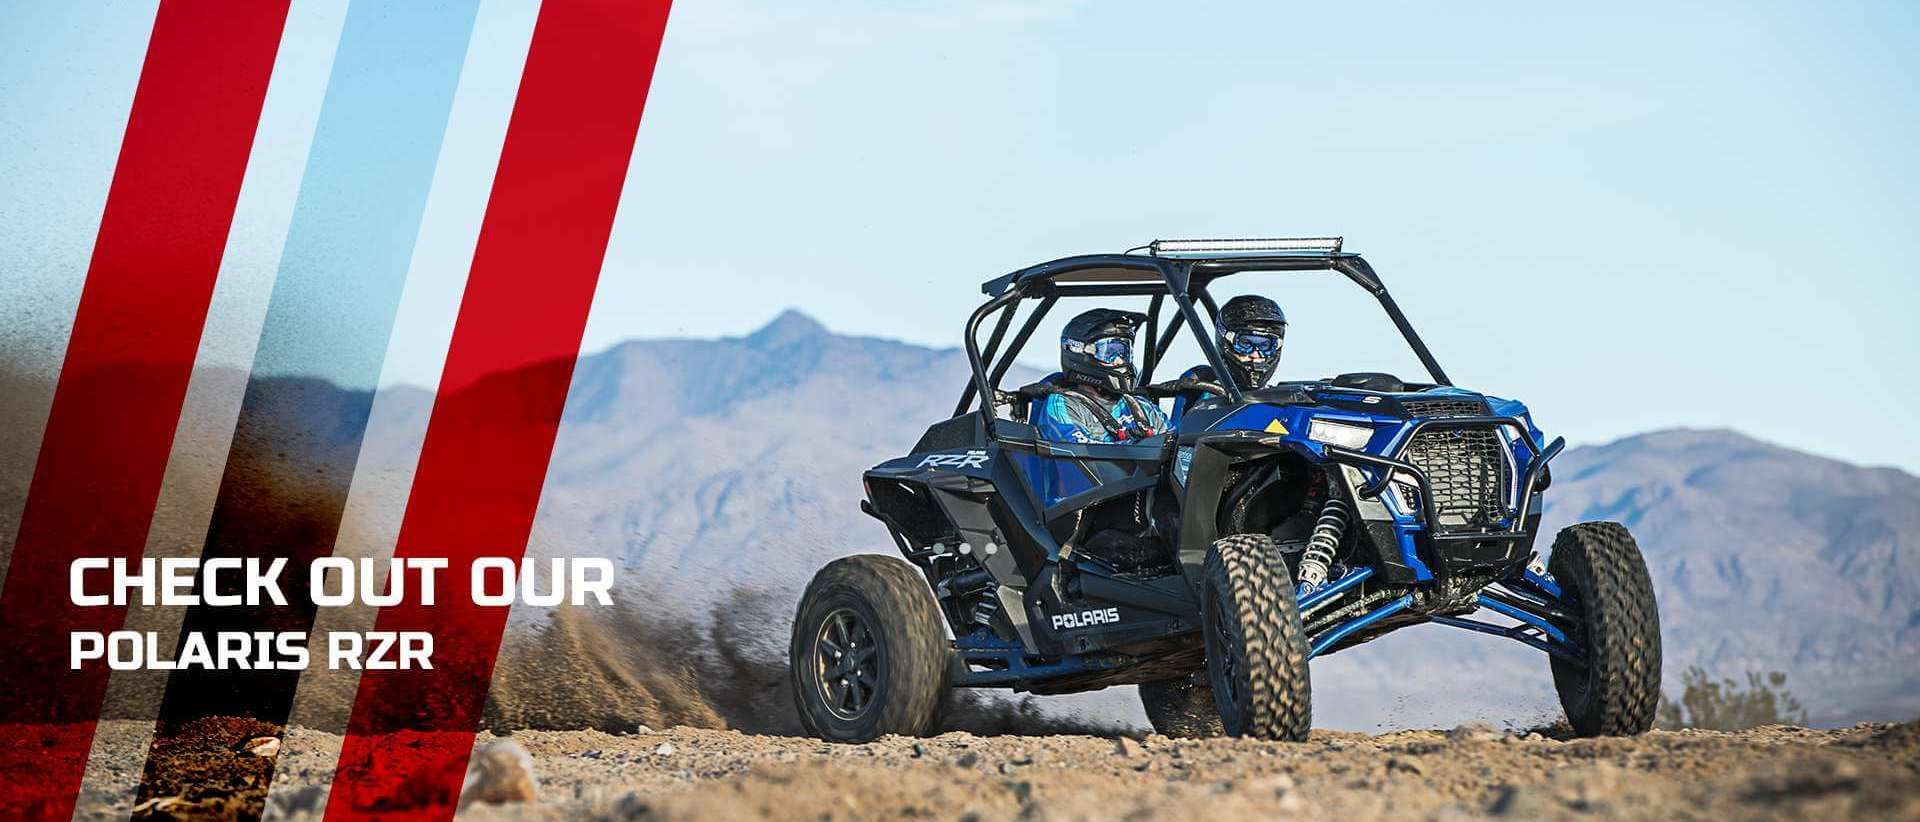 Check Out Our Polaris RZR | A+ Power Sports